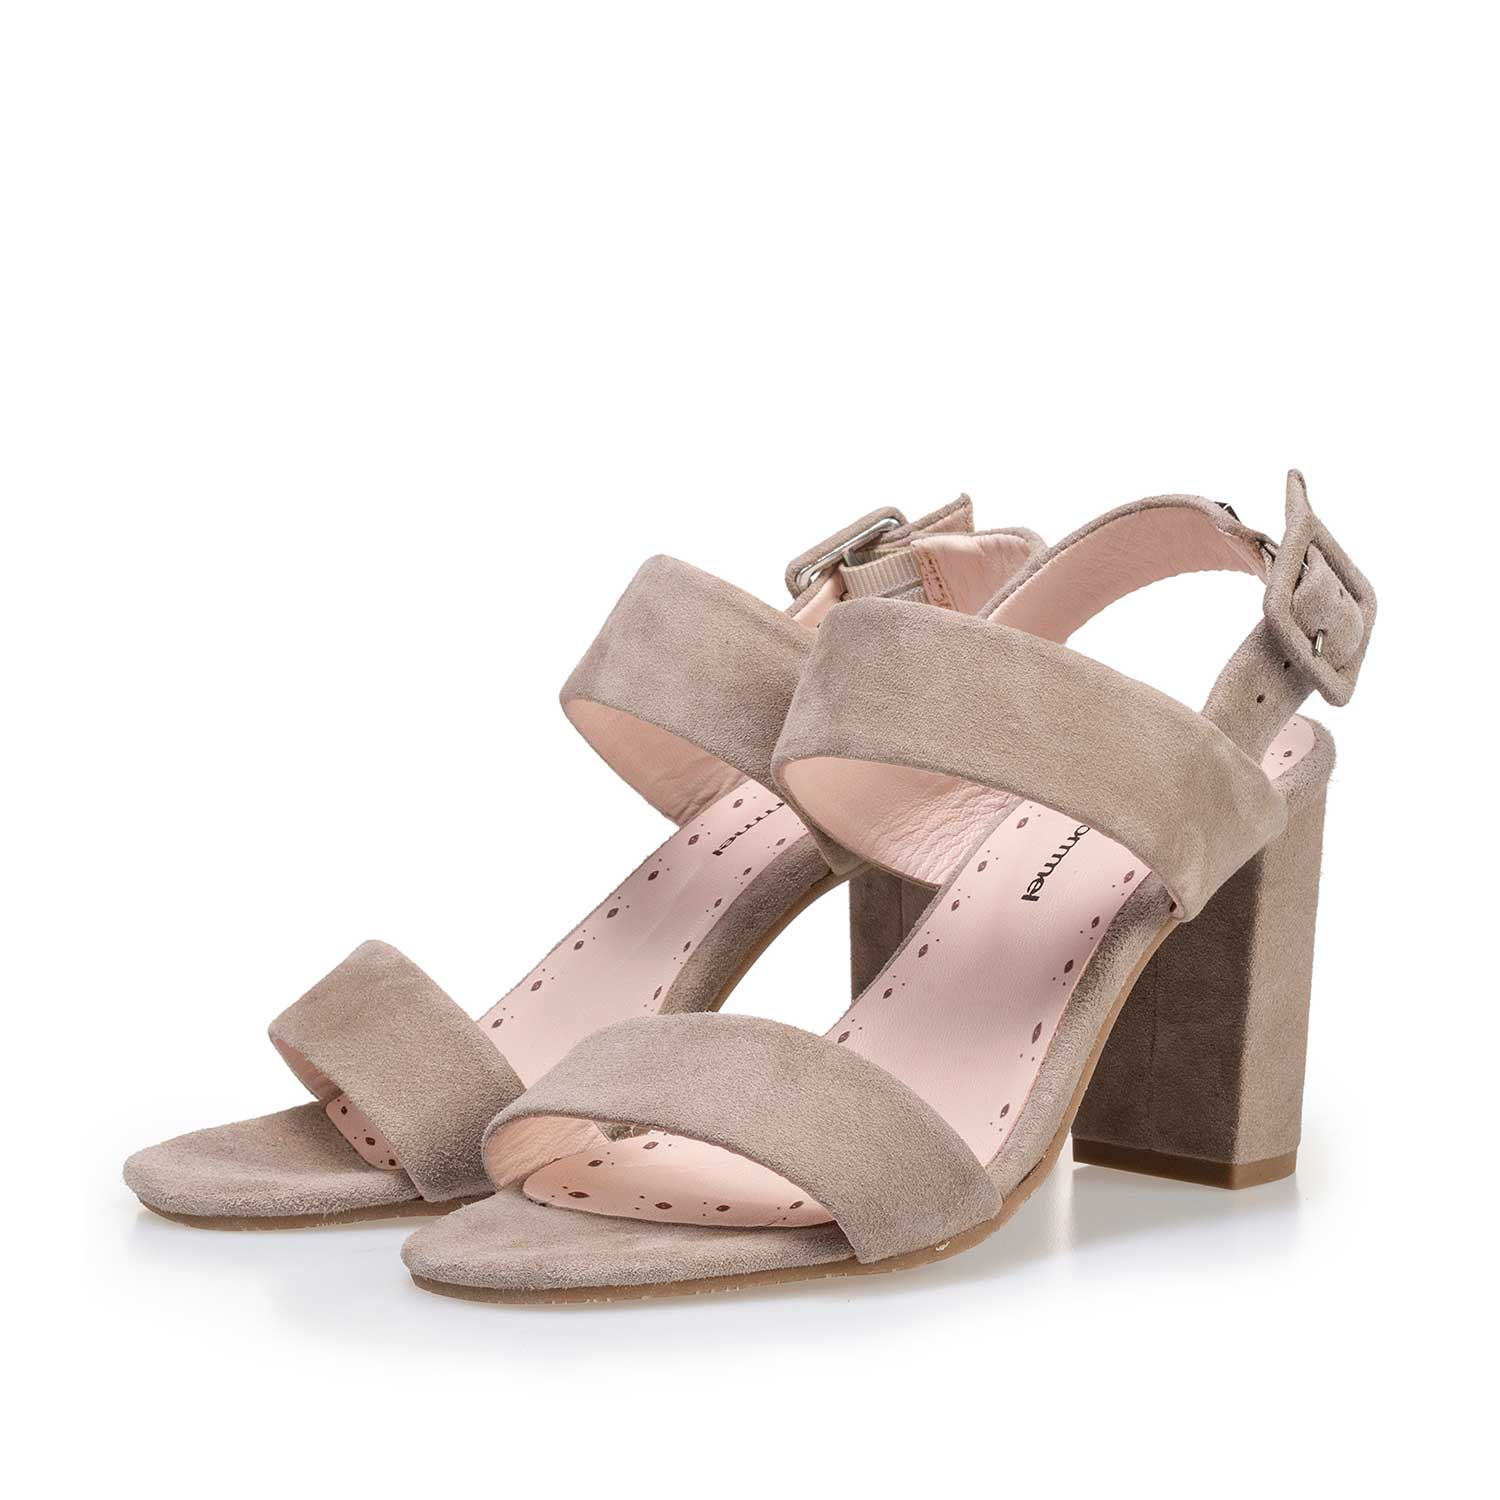 85228/03 - Taupe-coloured calf's suede leather heeled sandal